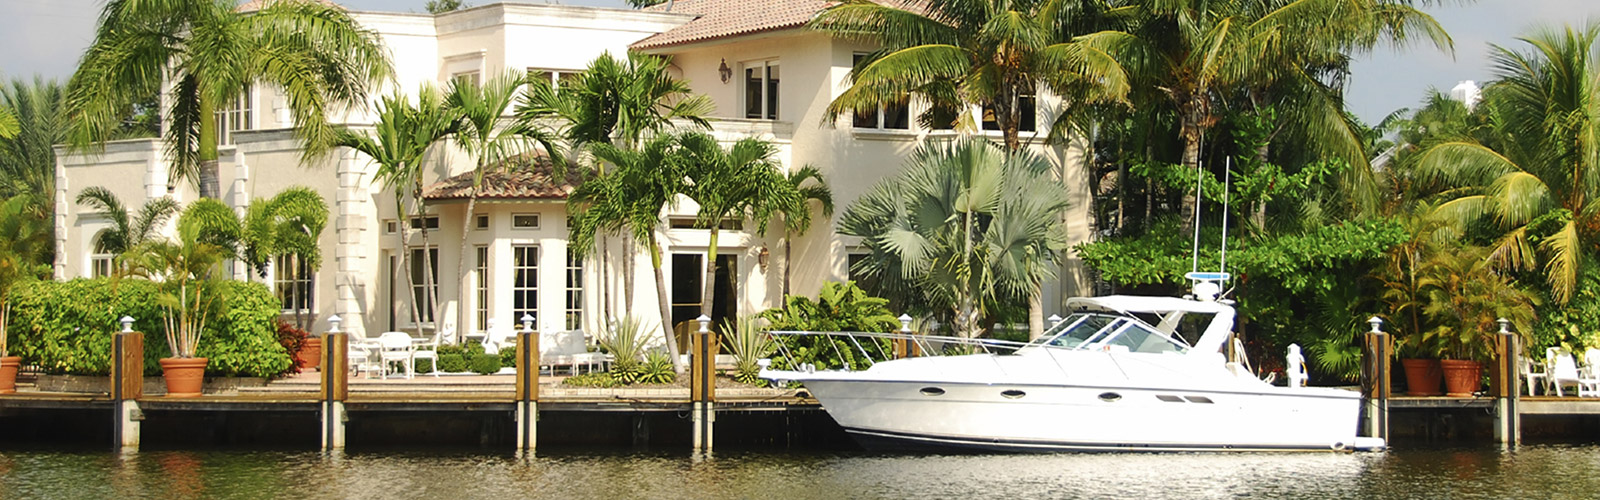 Haus kaufen Florida - Immobilien Florida: Luxus Immobilien am Wasser, Haus kaufen, Villa kaufen in Olde Naples Florida, Port Royal, Aqualane Shores, Olde Naples, Gulf Shores, Park Shore, Moorings, Coquina Sands, Royal Harbor, Vanderbilt Beach, Grey Oaks, Lely Resort, Naples, Bonita Springs, Bonita Beach, Marco Island, Estero, Fort Myers, Fort Myers Beach, Sanibel, Cape Coral, Florida, USA